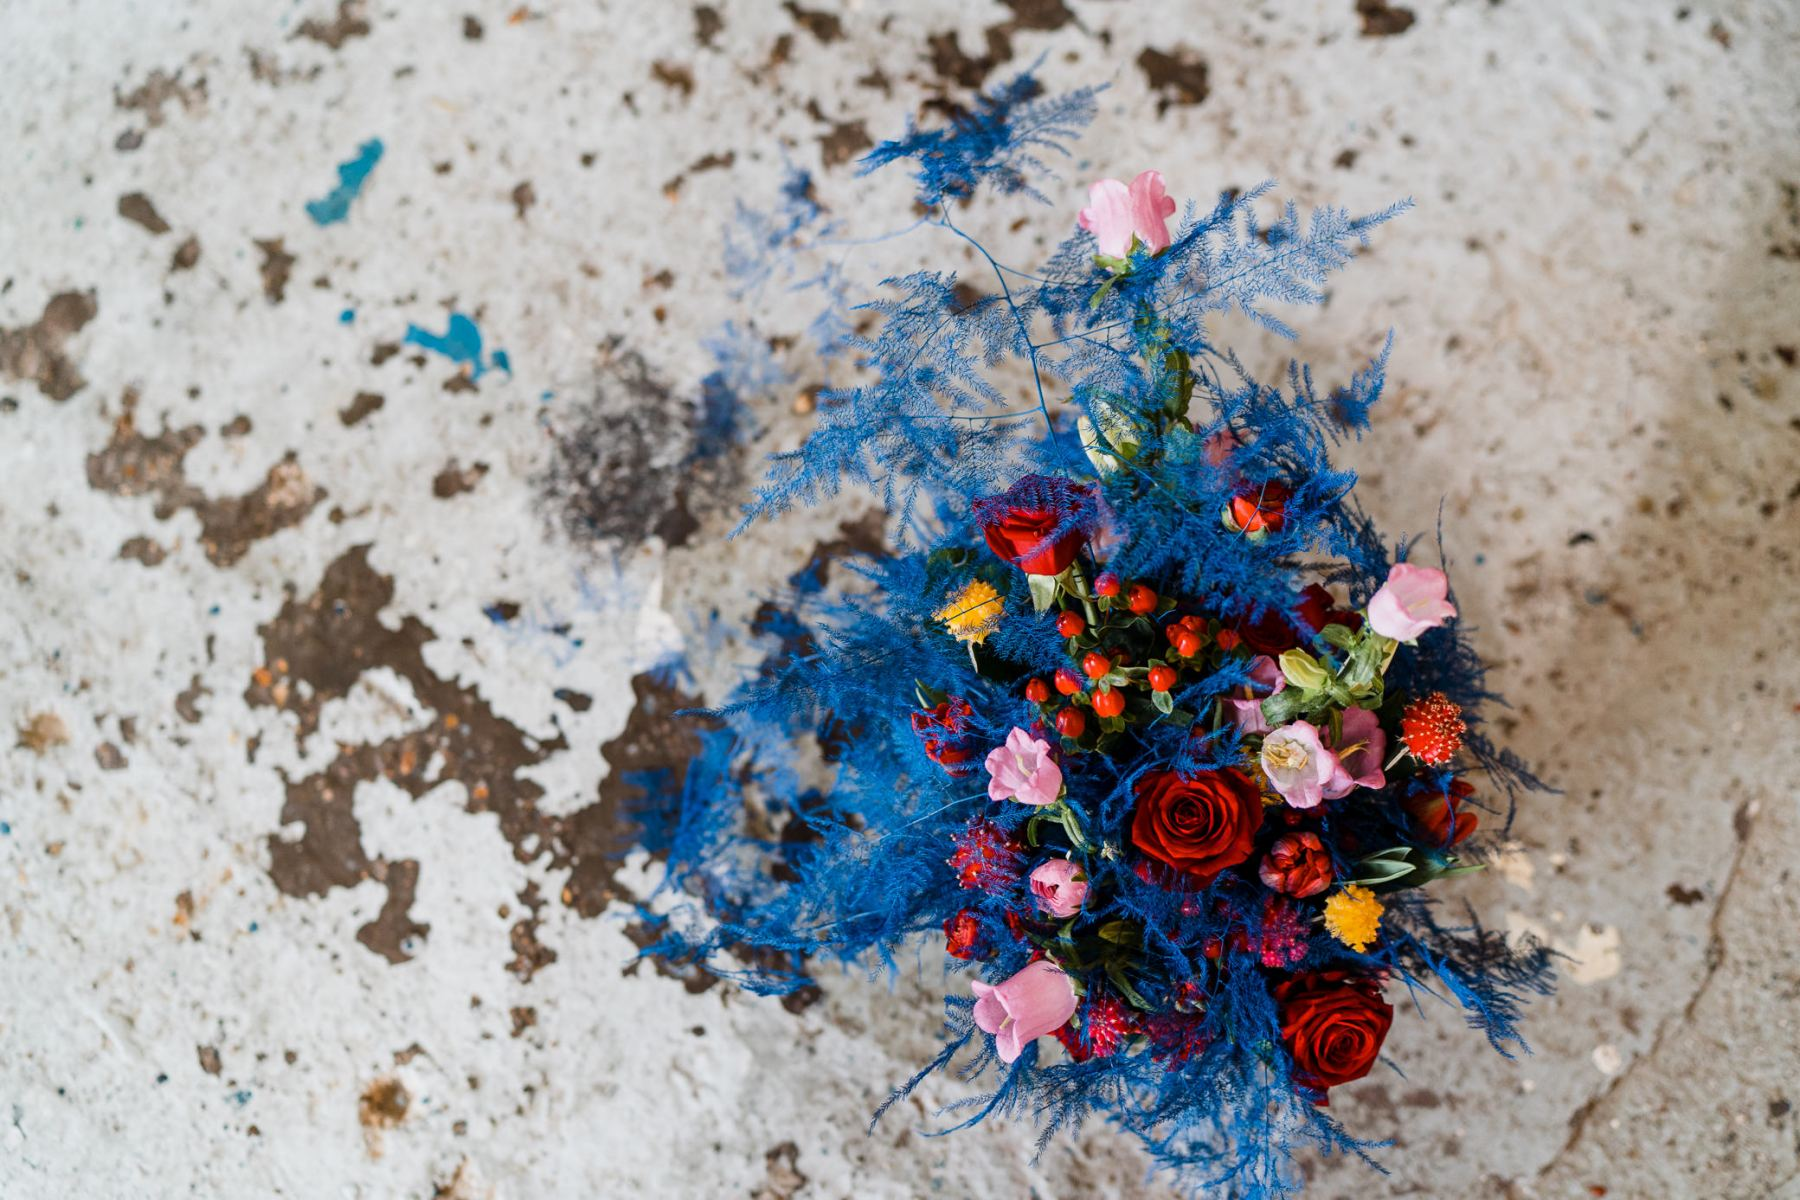 The wedding bouquet was done with super bright blooms of all colors, with berries and blue leaves